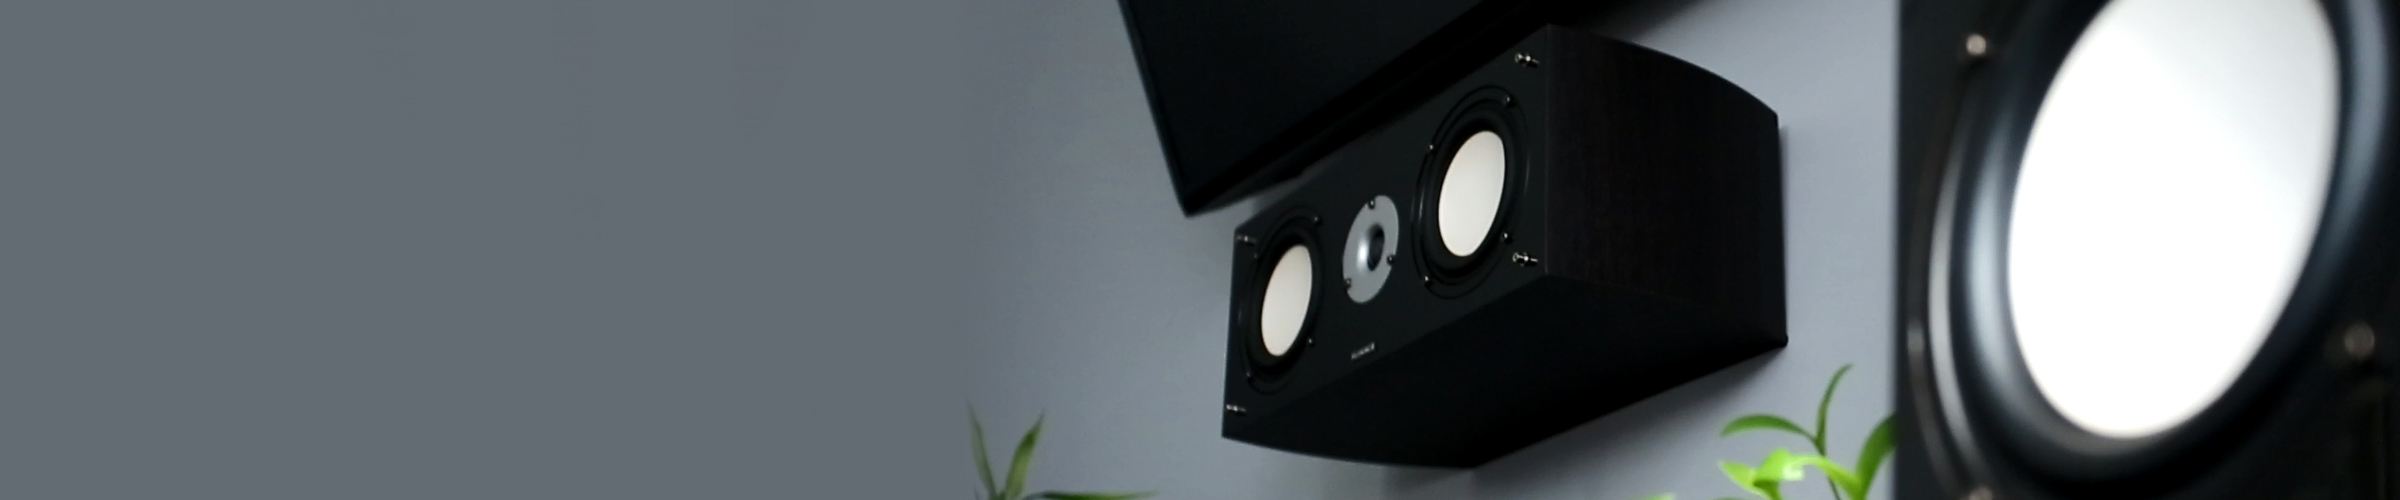 XL7C Center Channel Speaker Intro